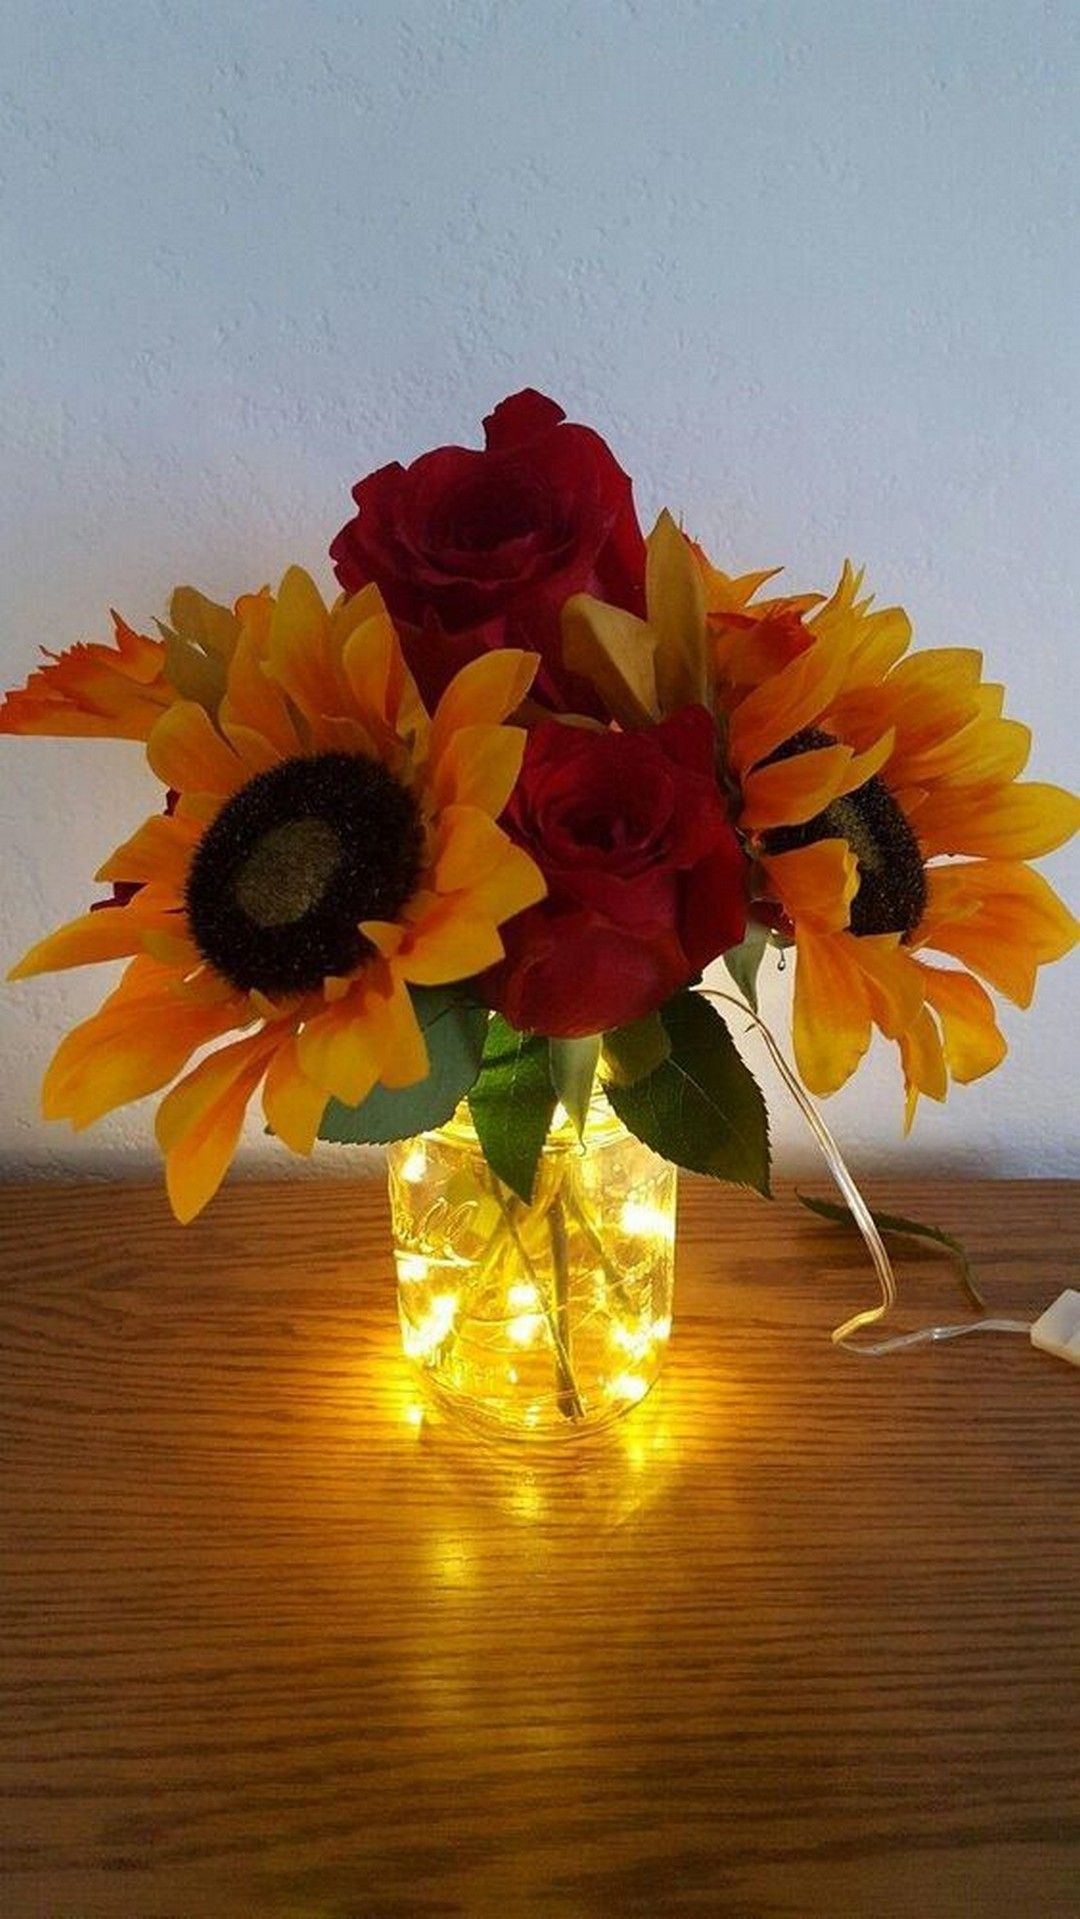 24 Rustic Mason Jar With Led Lights Flowers For Home Decoration Sunflower Wedding Decorations Sunflower Wedding Centerpieces Rustic Wedding Centerpieces